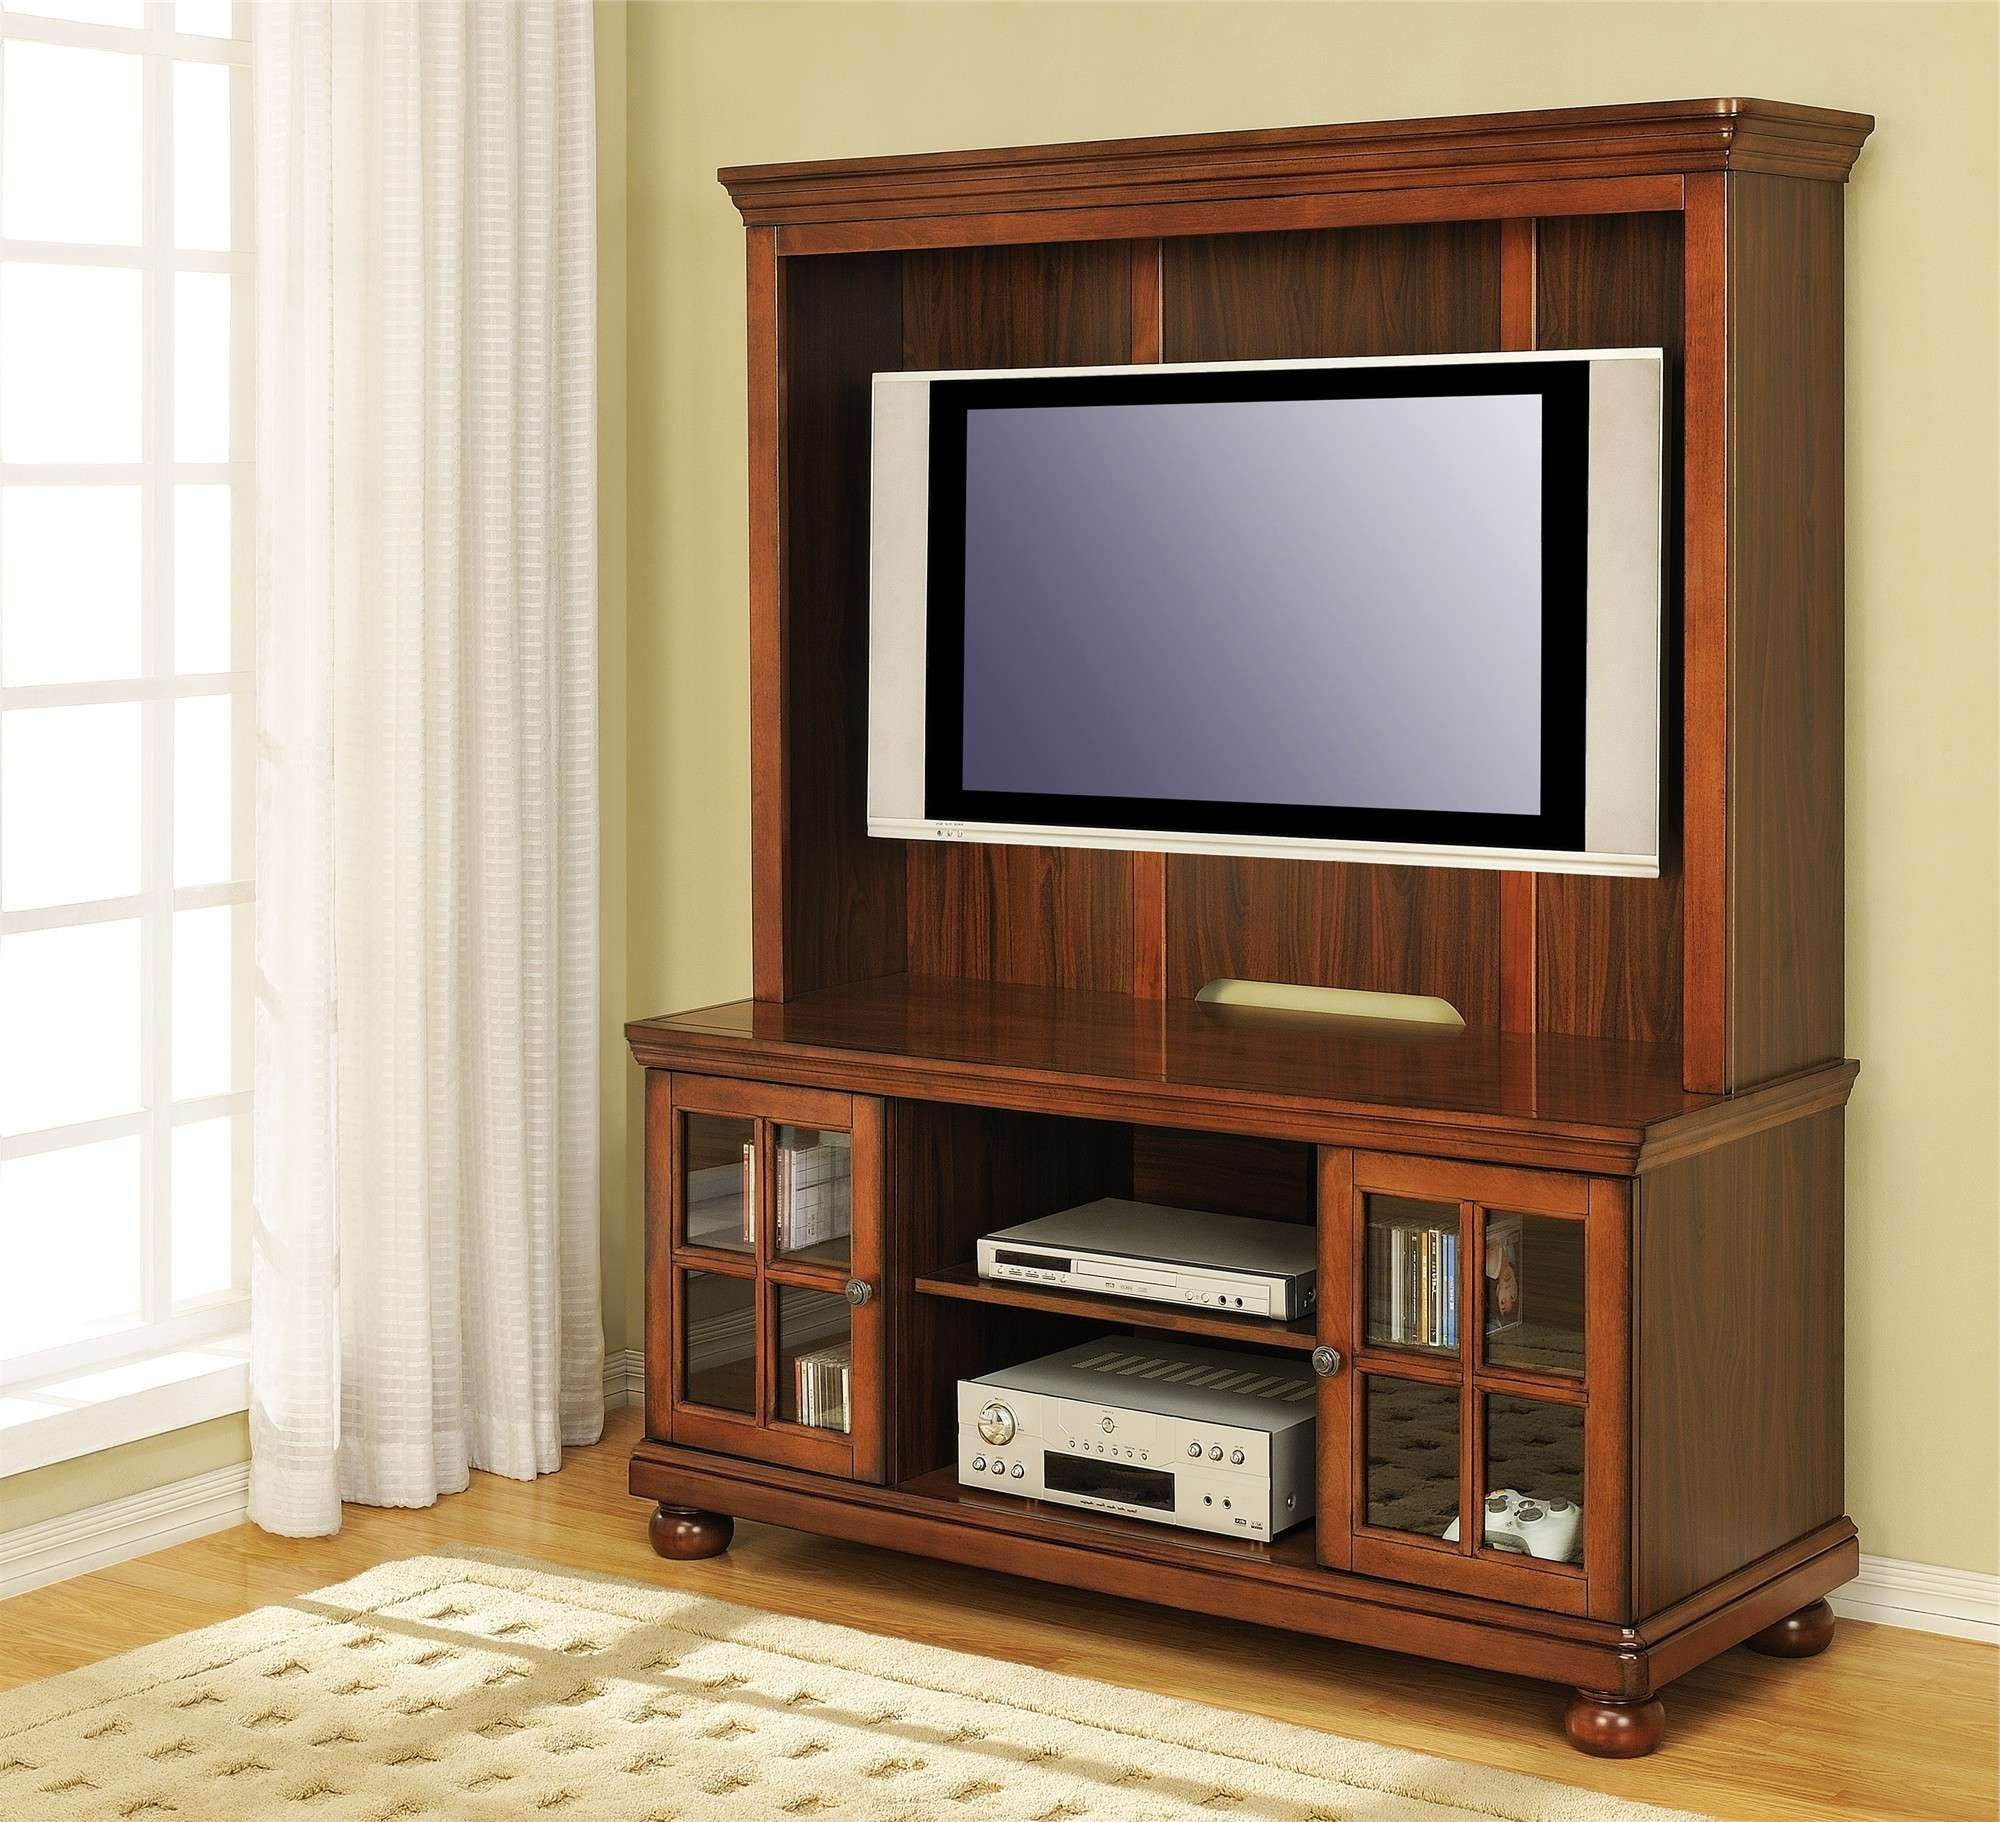 Modern Brown Oak Wood Media Cabinet With Mounted Tv Of Dazzling Inside Wooden Tv Stands With Glass Doors (View 4 of 15)